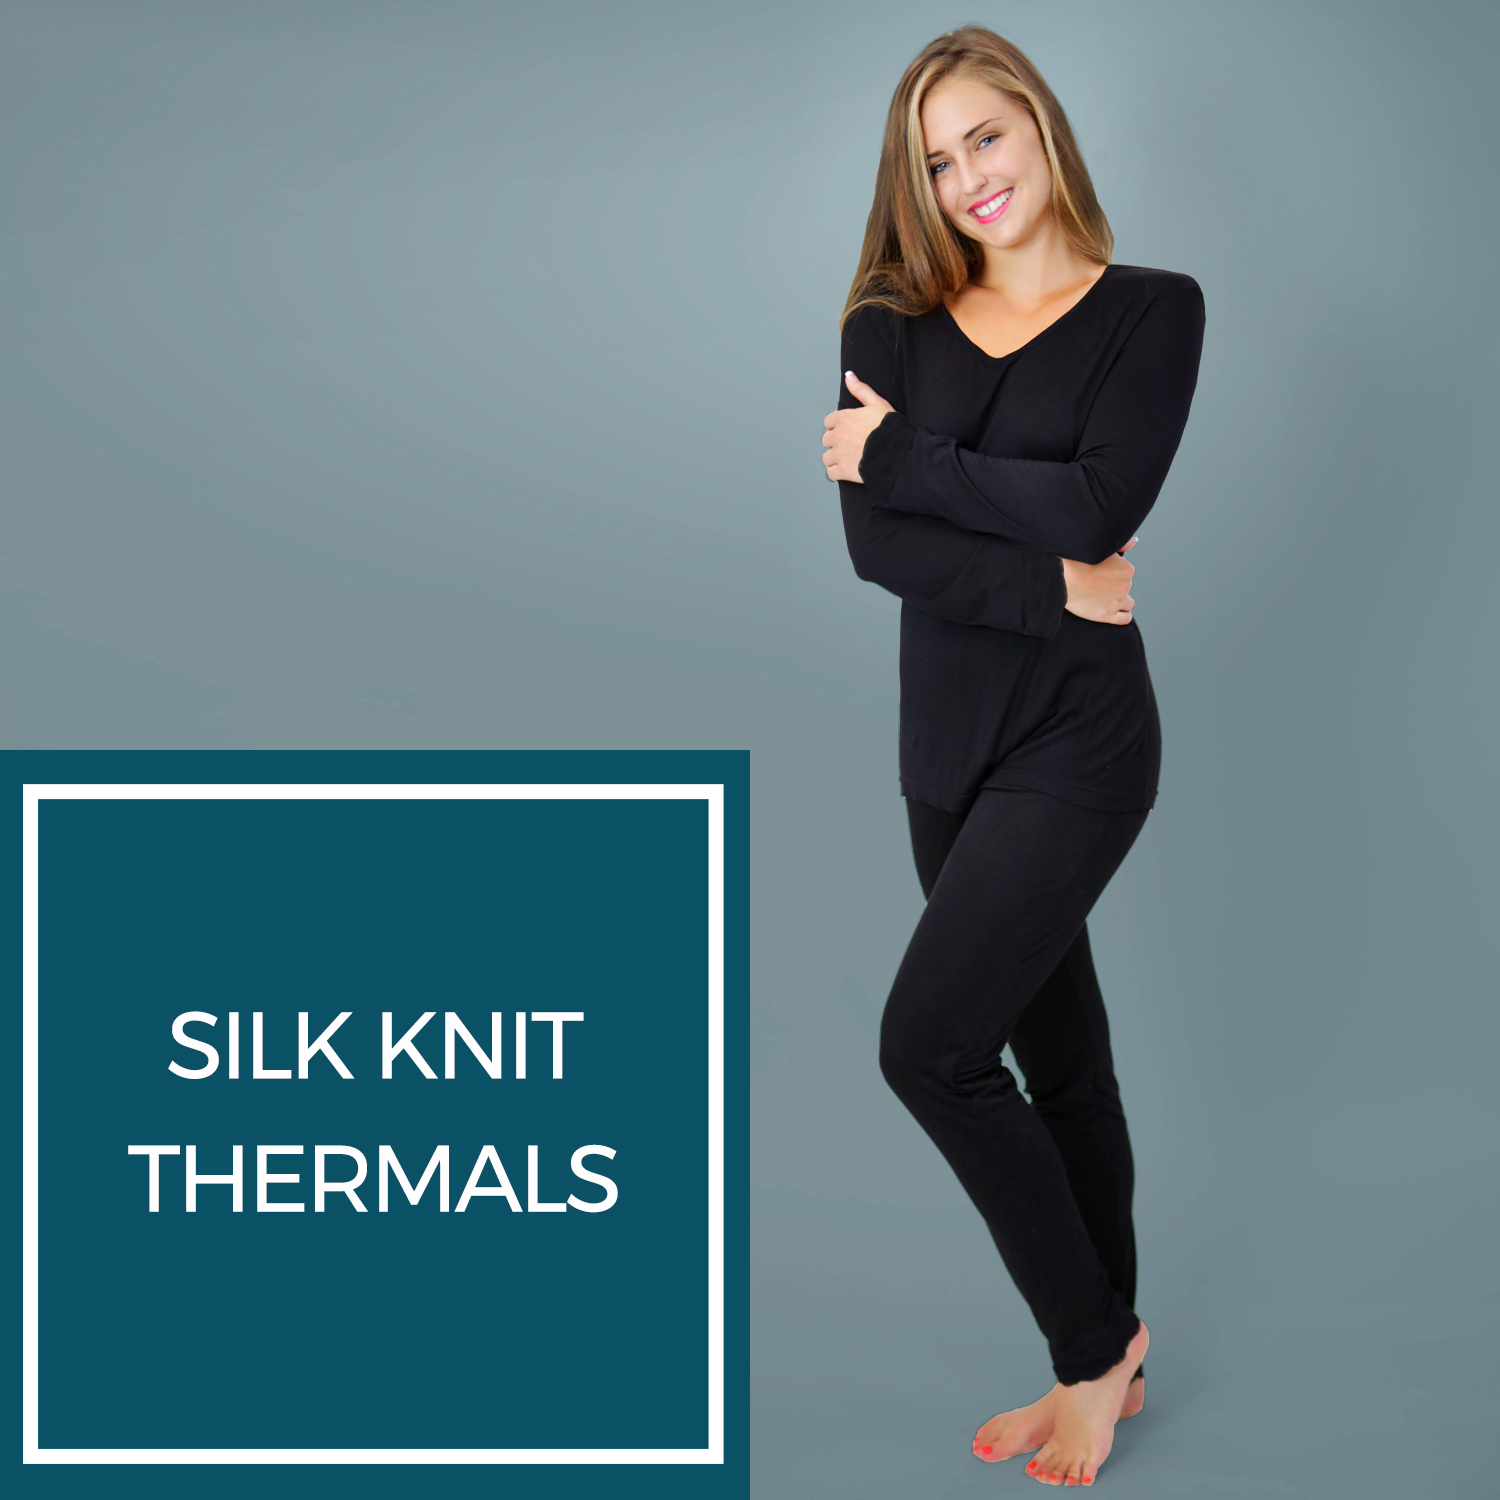 Silk Knit Thermals.jpg